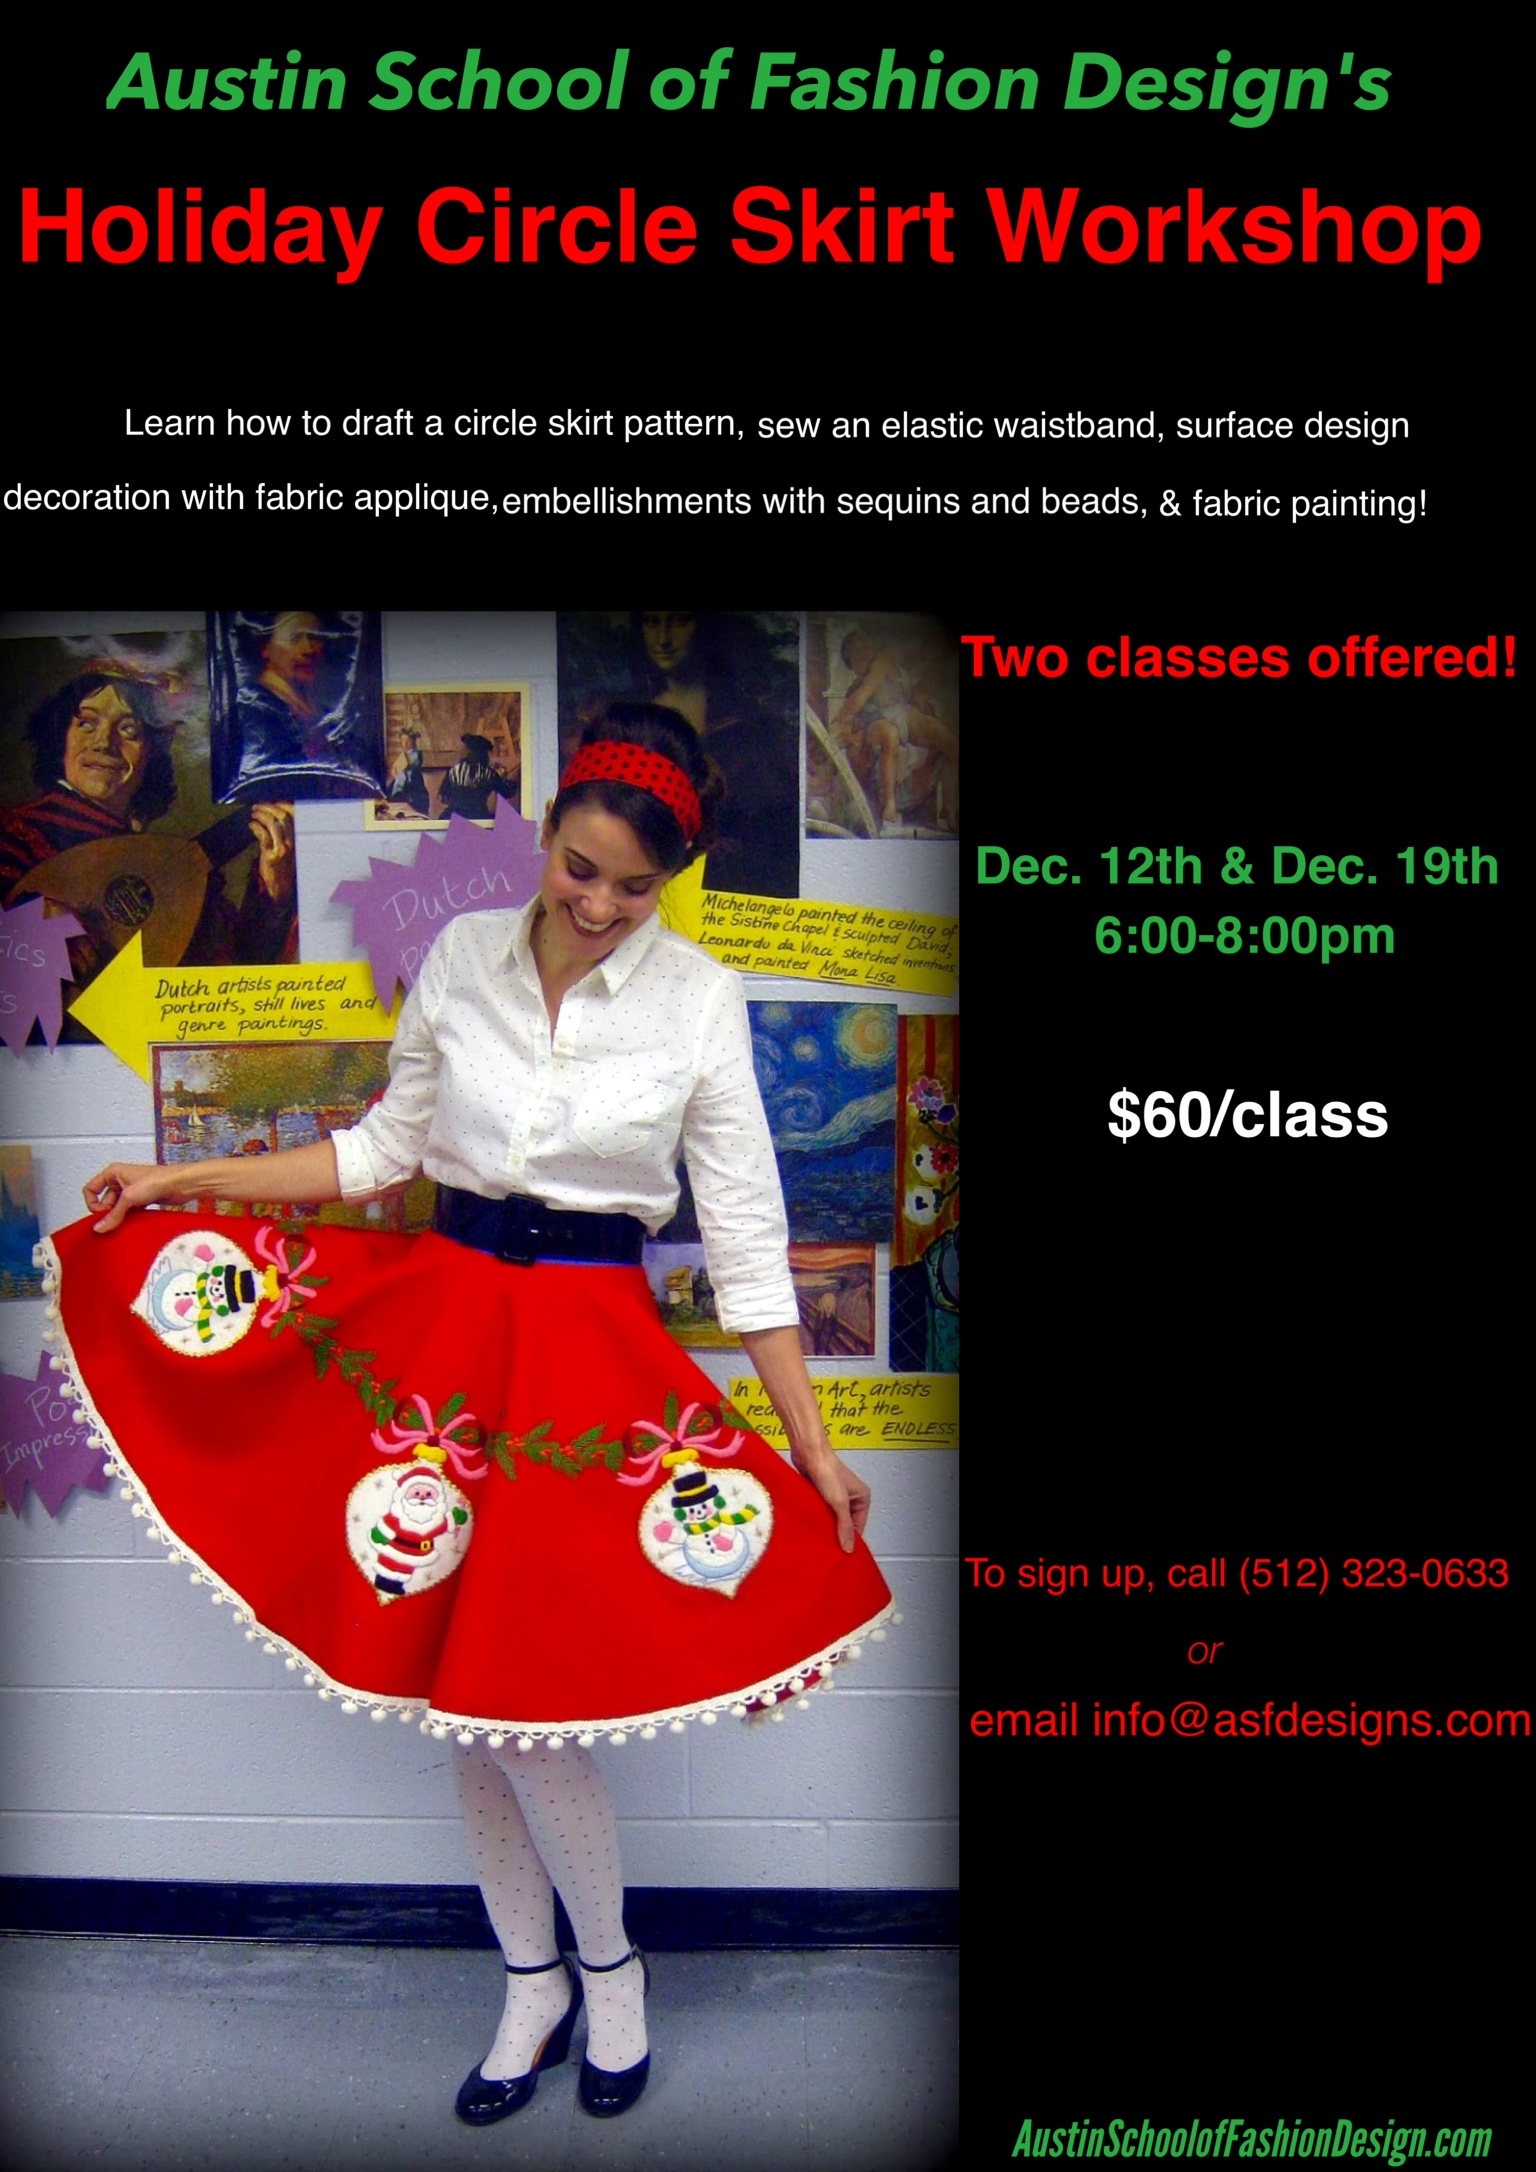 Austin School Fashion Design Holiday Circle Skirt Workshop